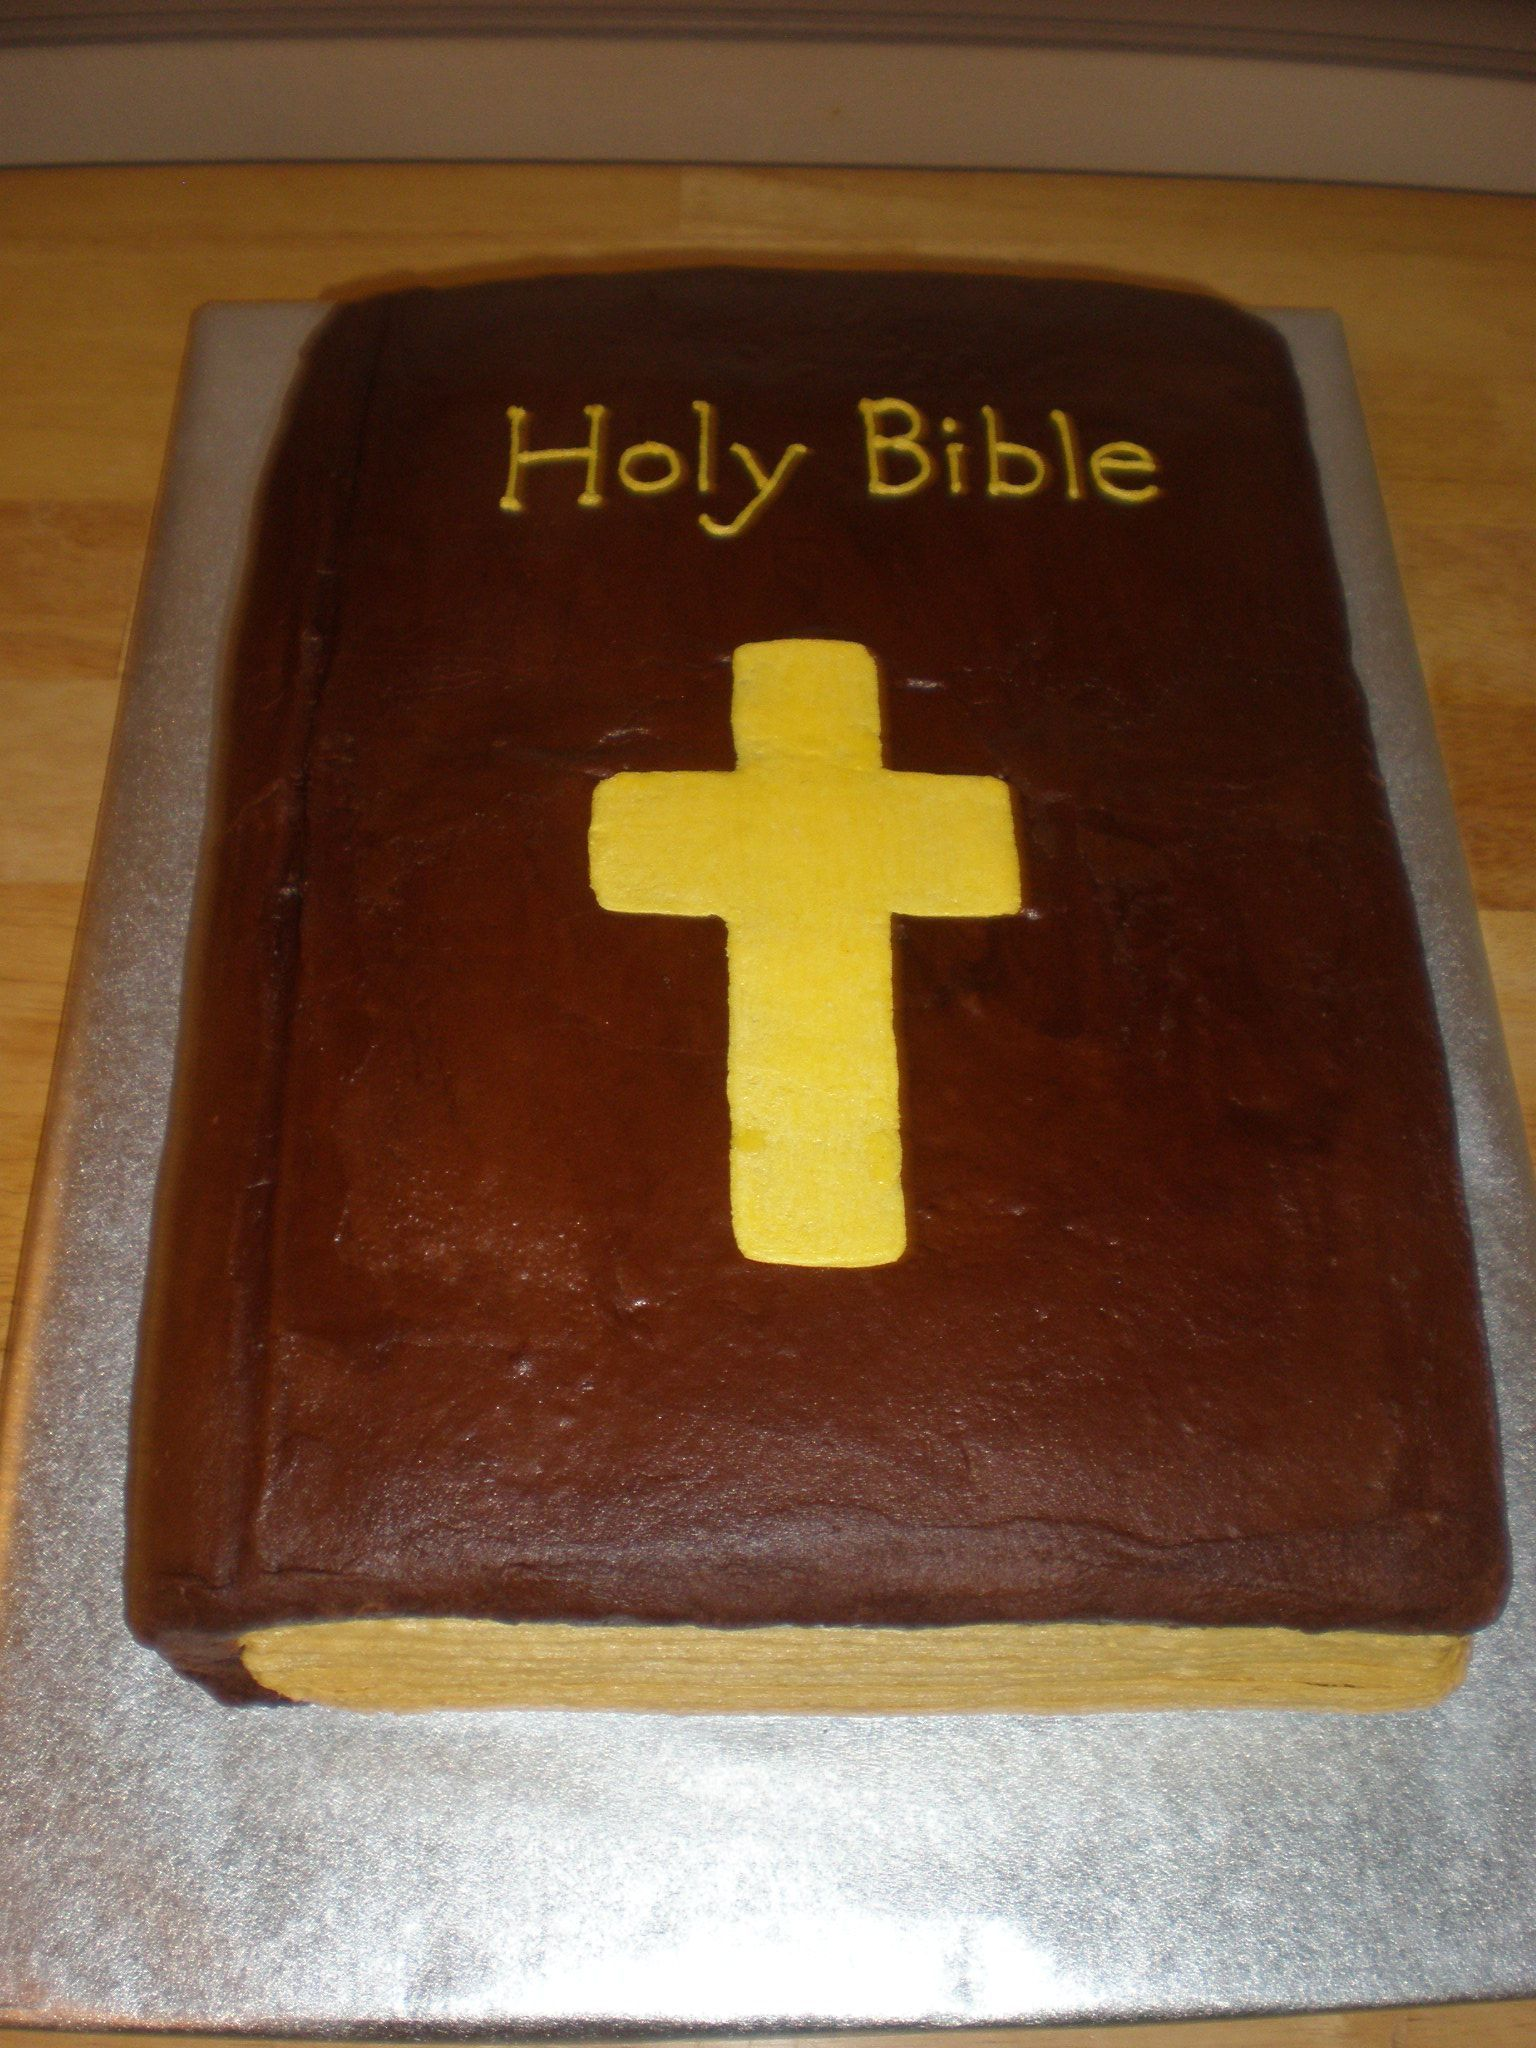 Bible cake - Made for Pastor Appreciation Day at church ...